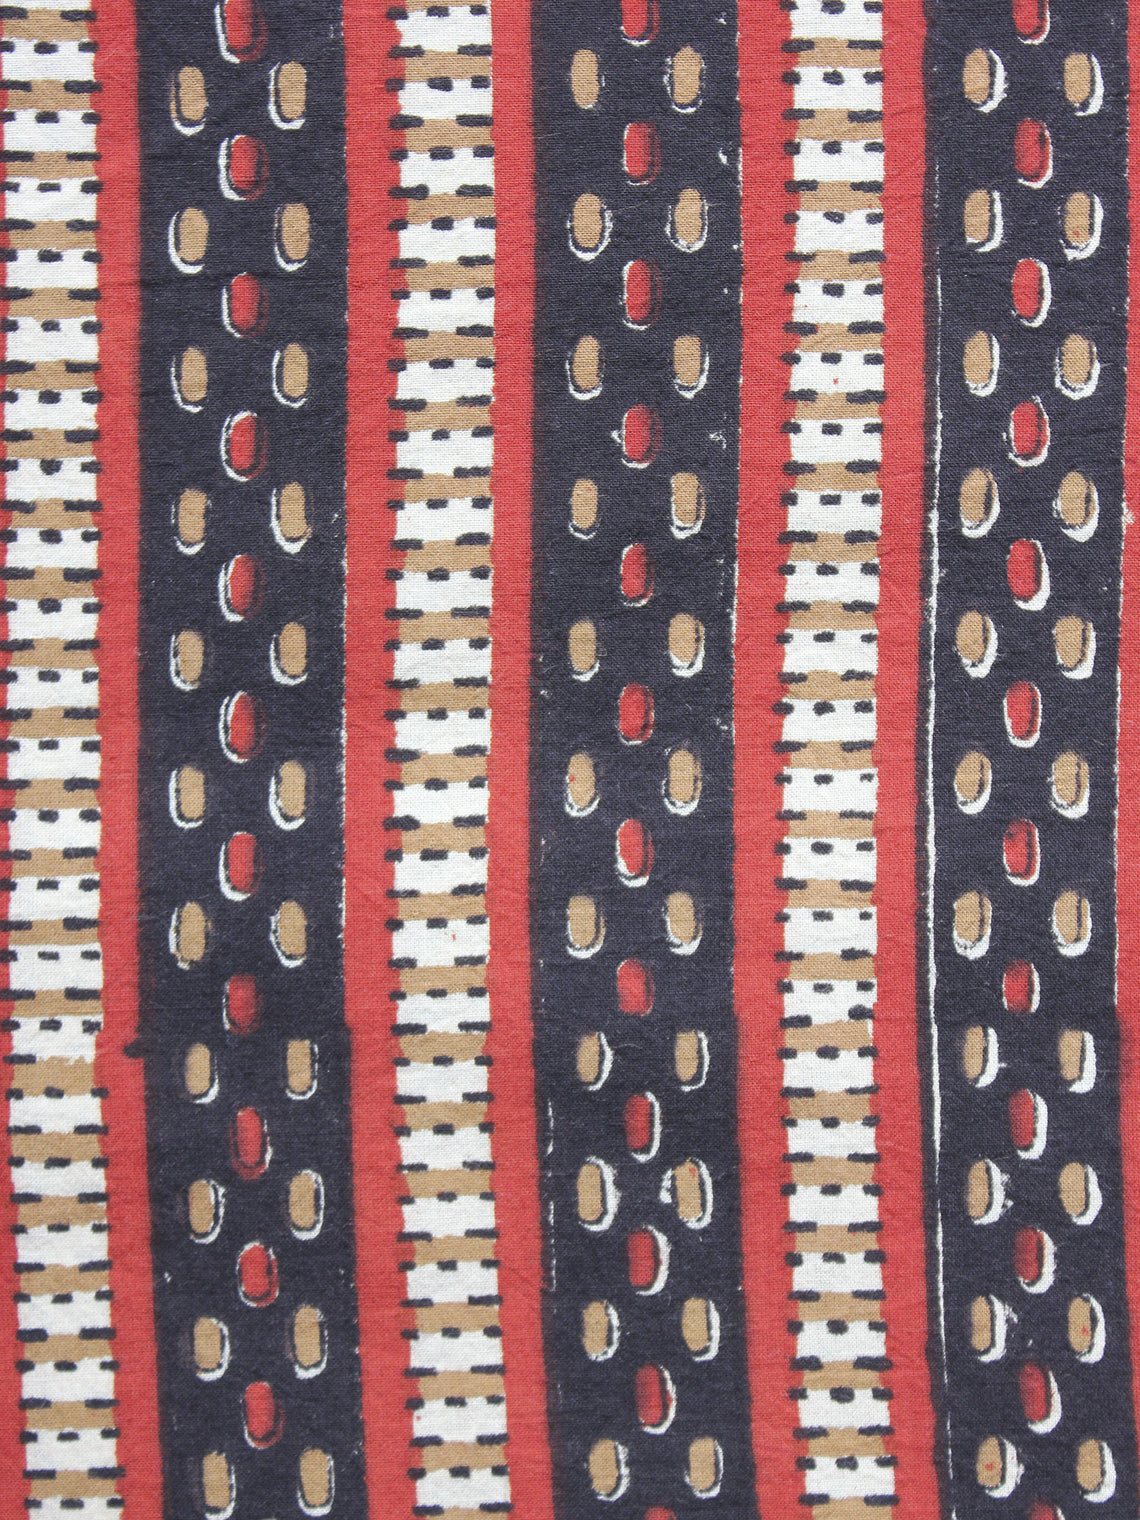 Black Red Mustard Ivory Hand Block Printed Cotton Fabric Per Meter - F001F878